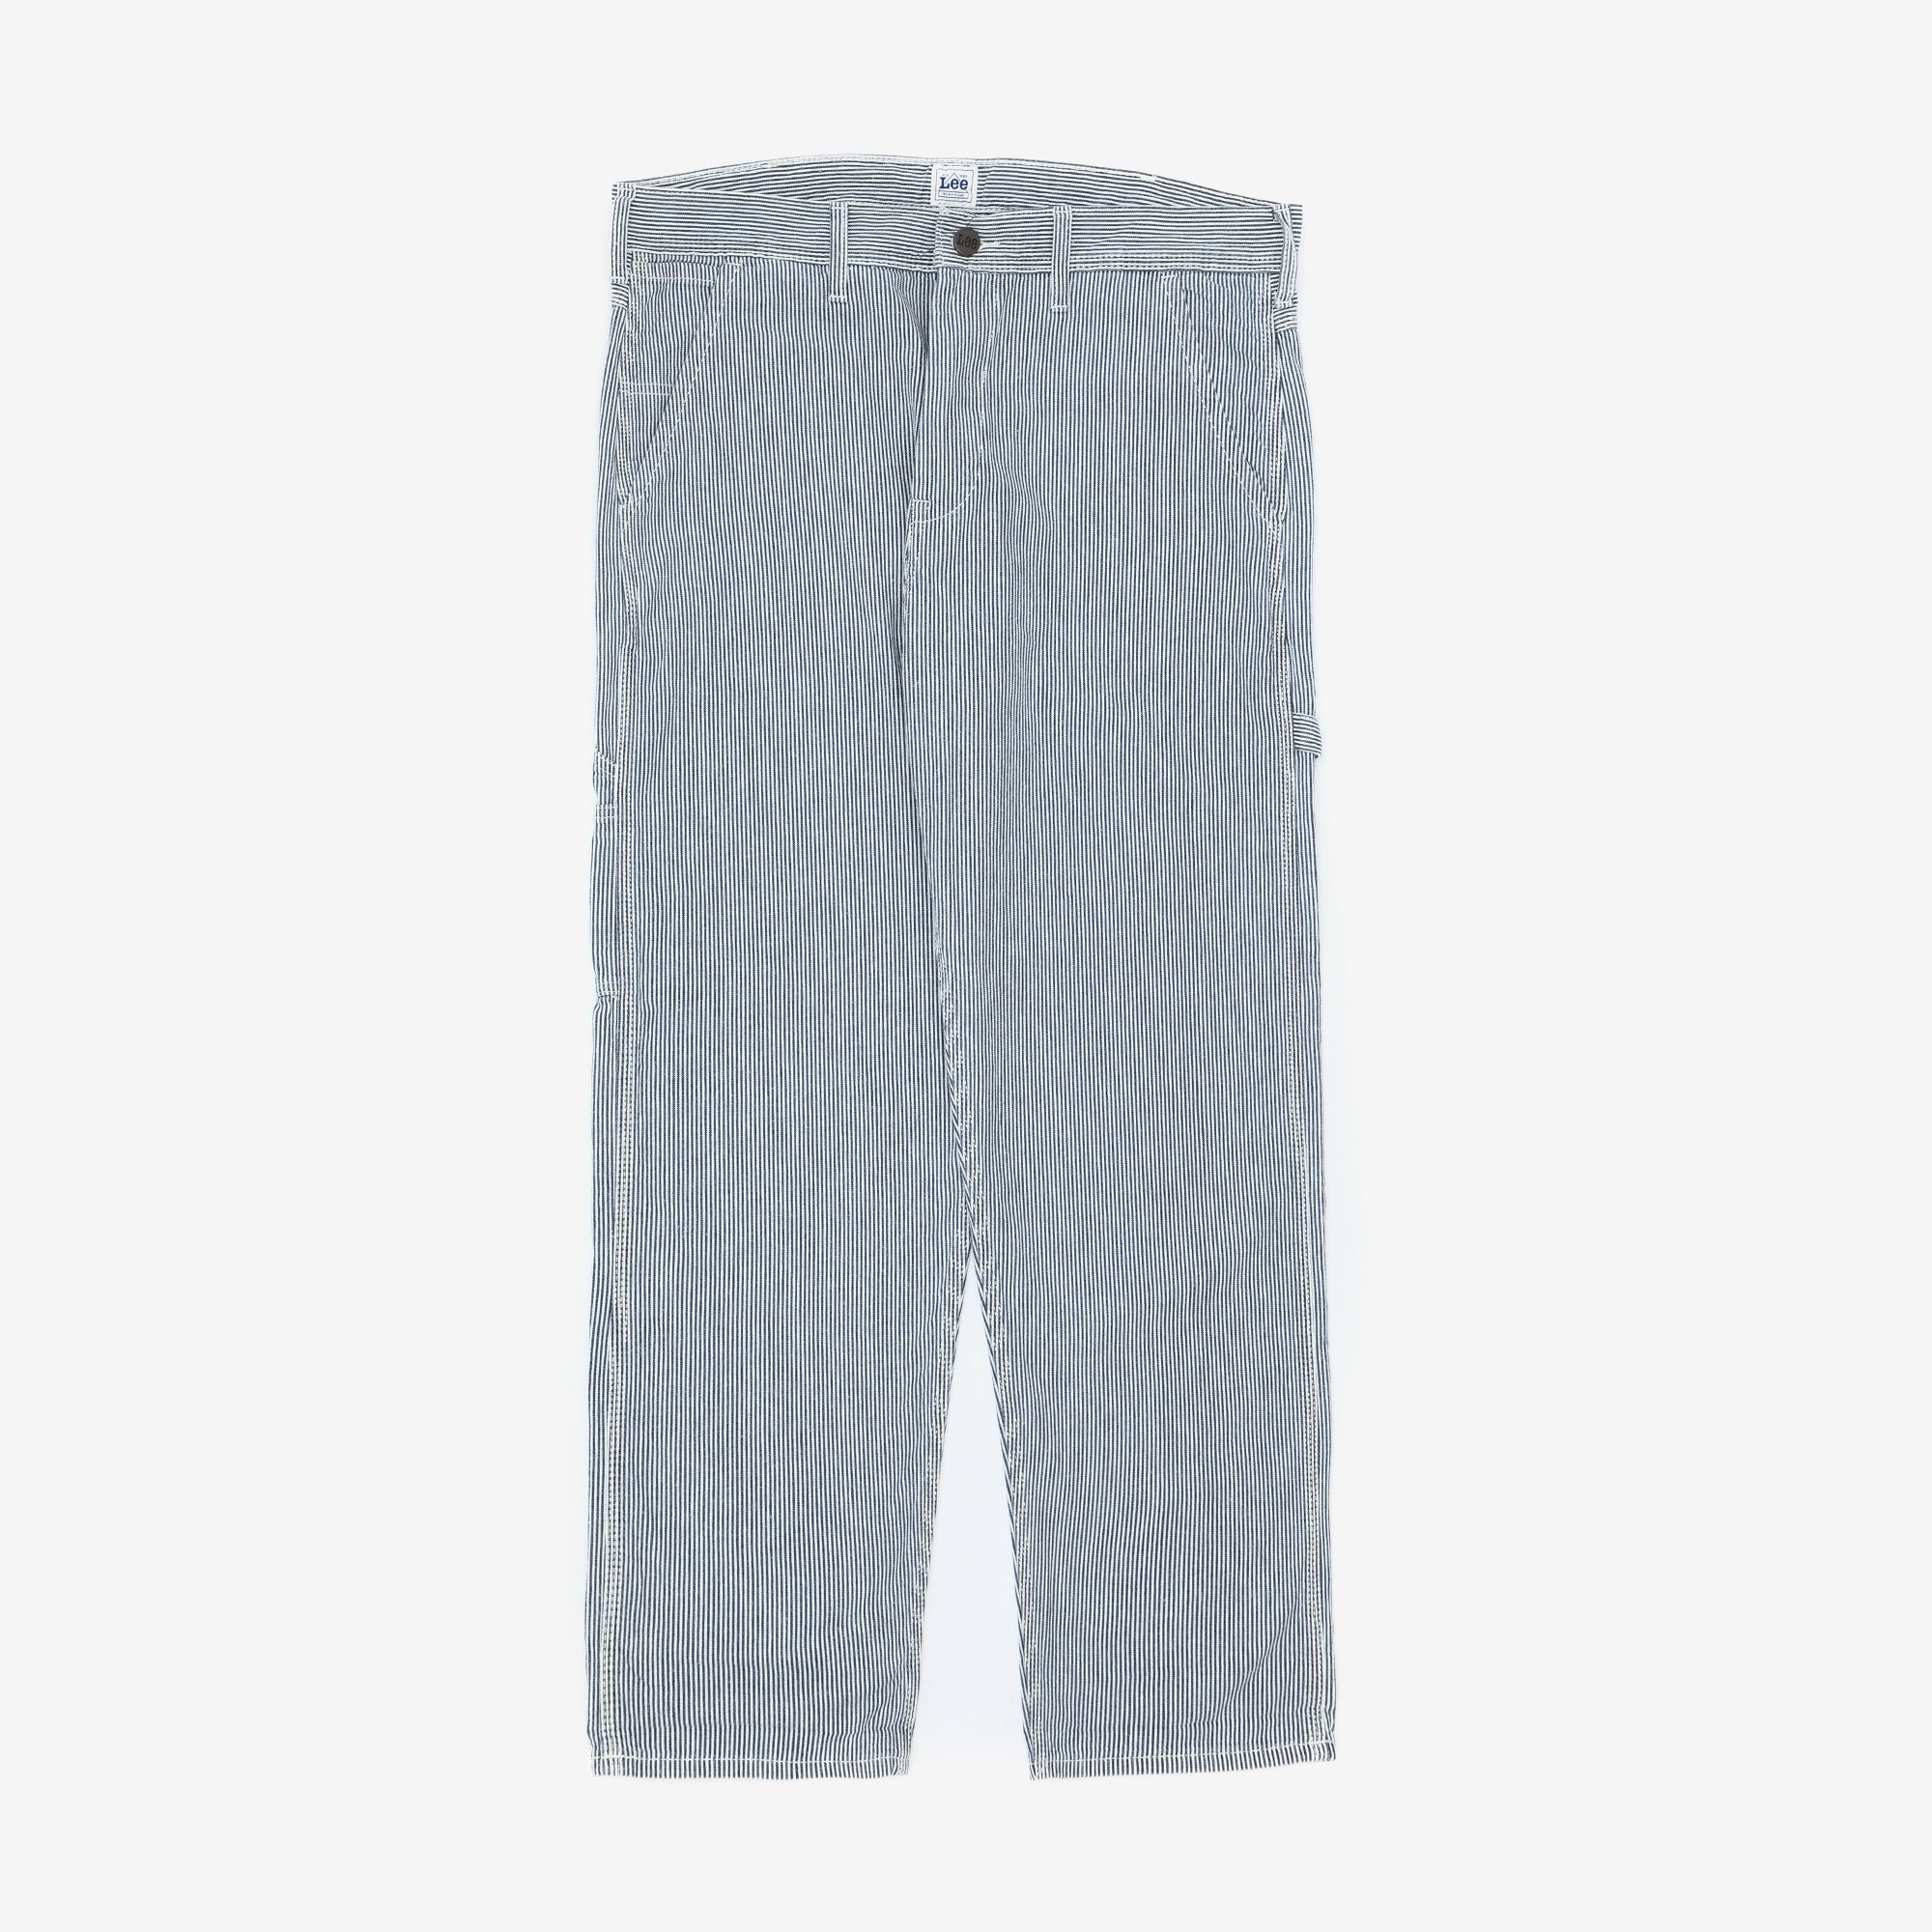 Hickory Striped Carpenter Pants